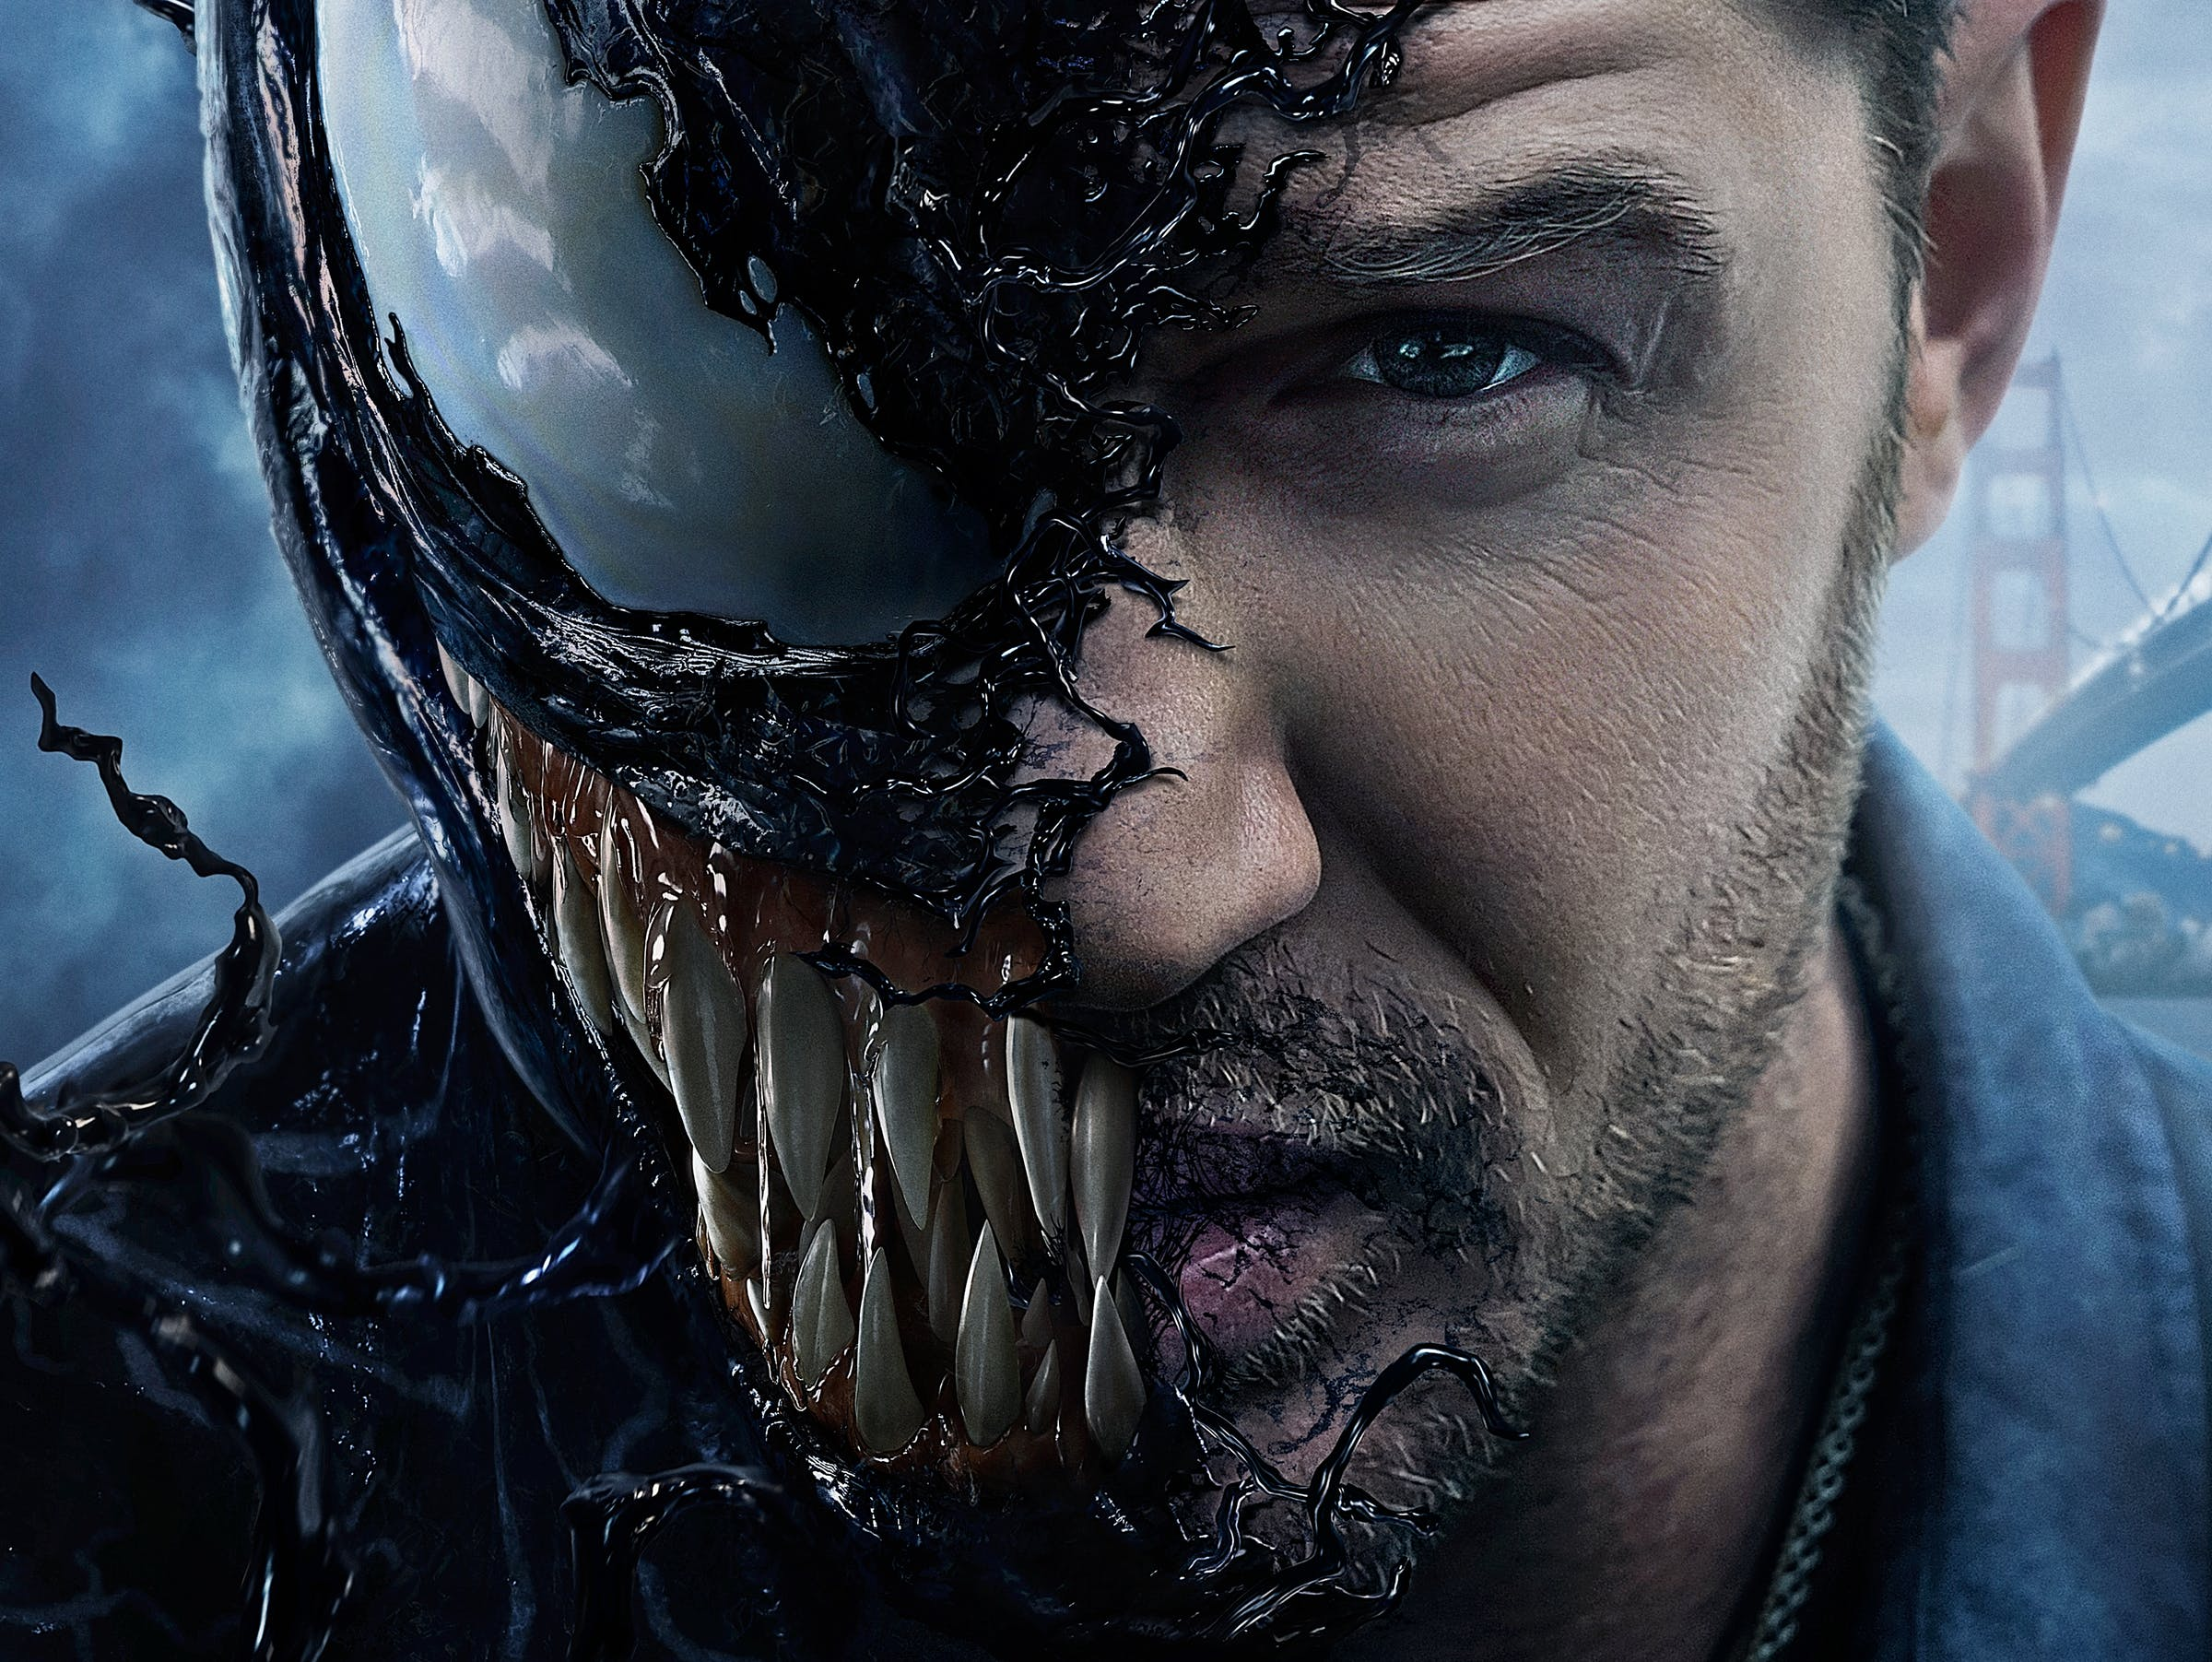 Venom' Review: A Slimy Thriller That Wags Its Tongue at